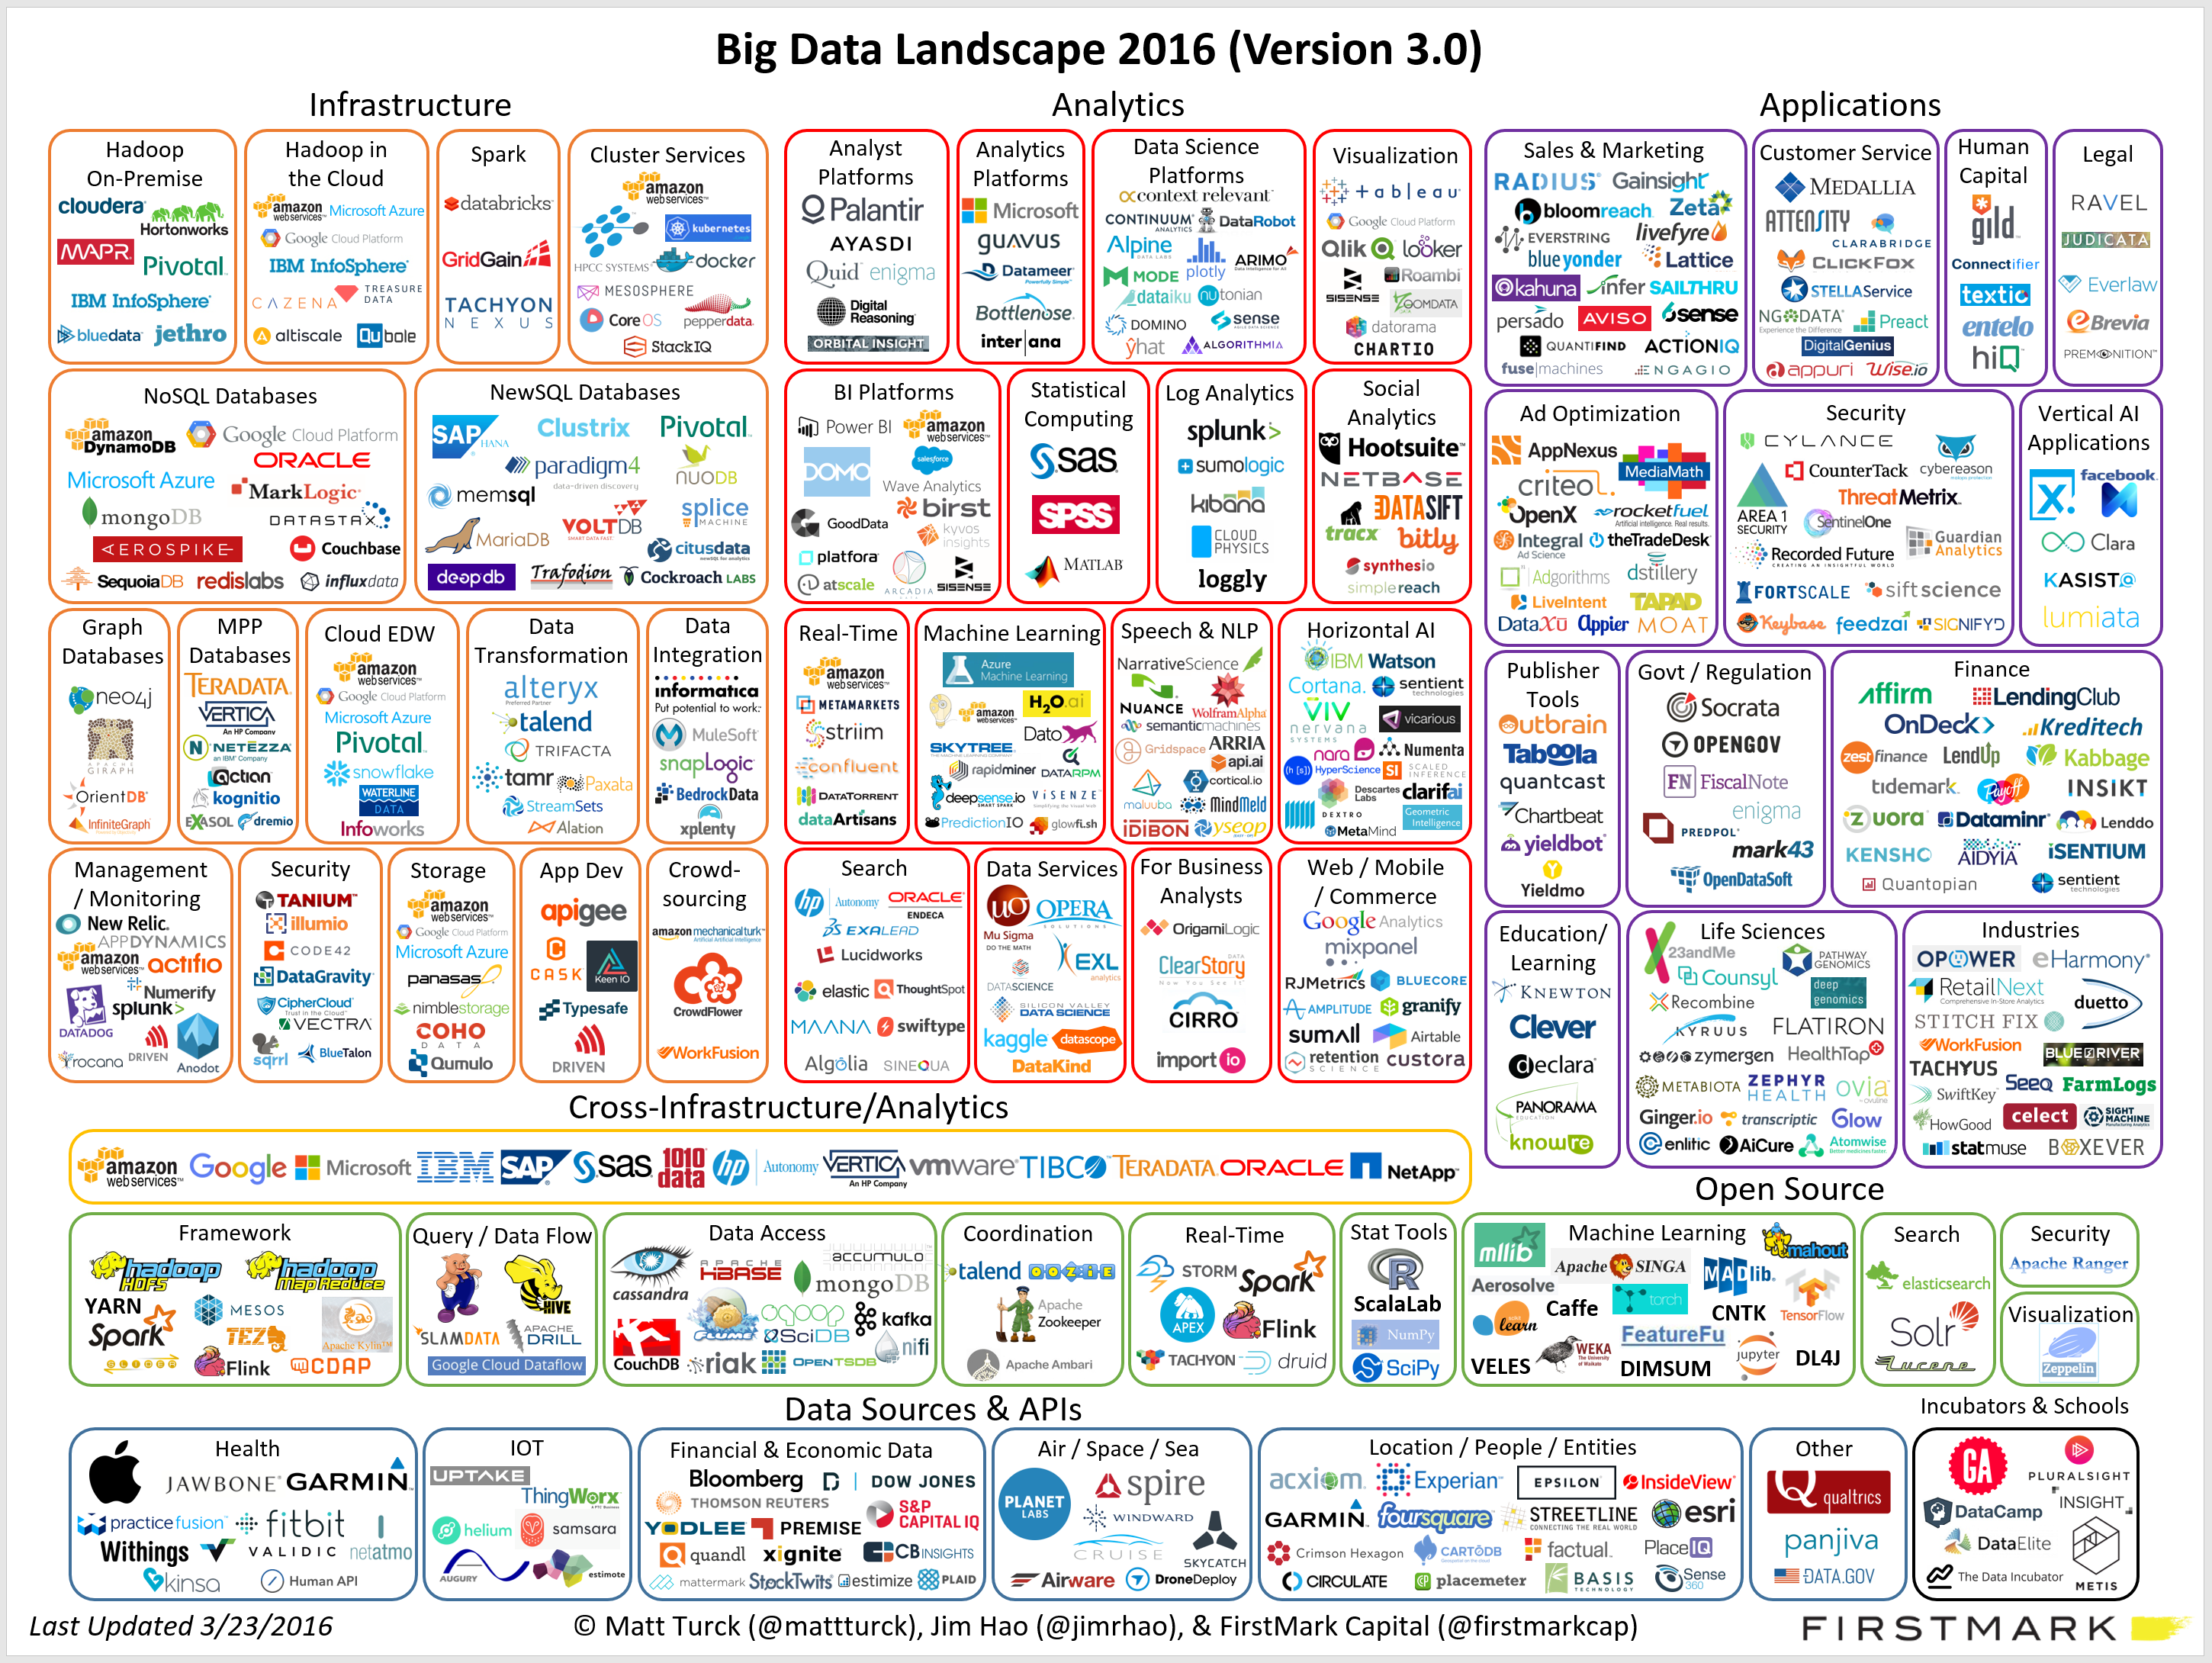 Big-Data-Landscape-2016-v18-FINAL 2.png